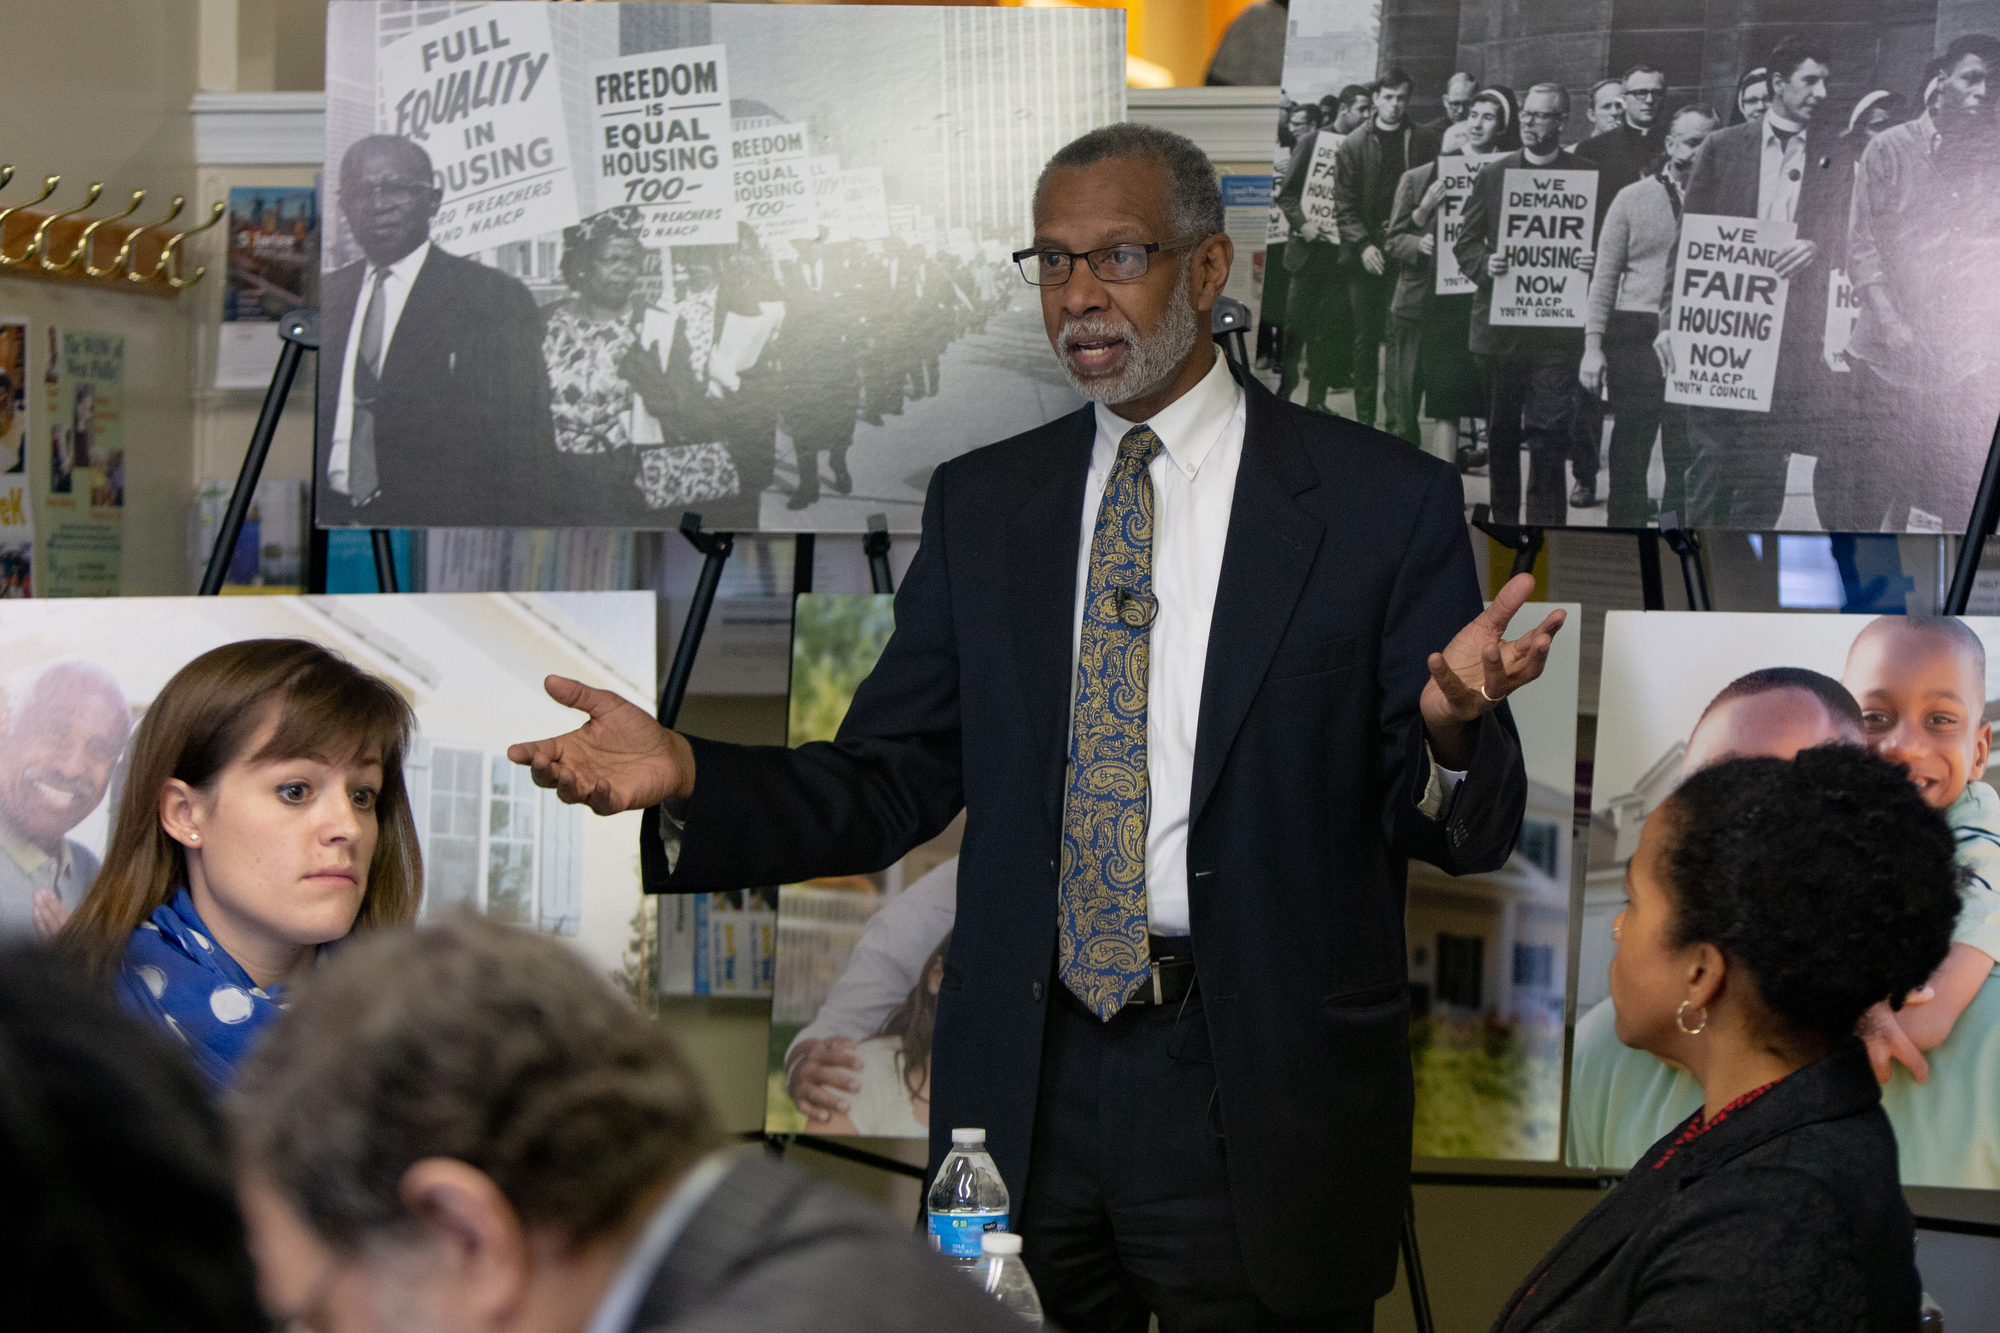 December 12, 2018 – State Senator Vincent Hughes and State Senator Art Haywood joined, activists, advocates, and community organizations for a roundtable discussion on the Fair Housing Act of 1968.